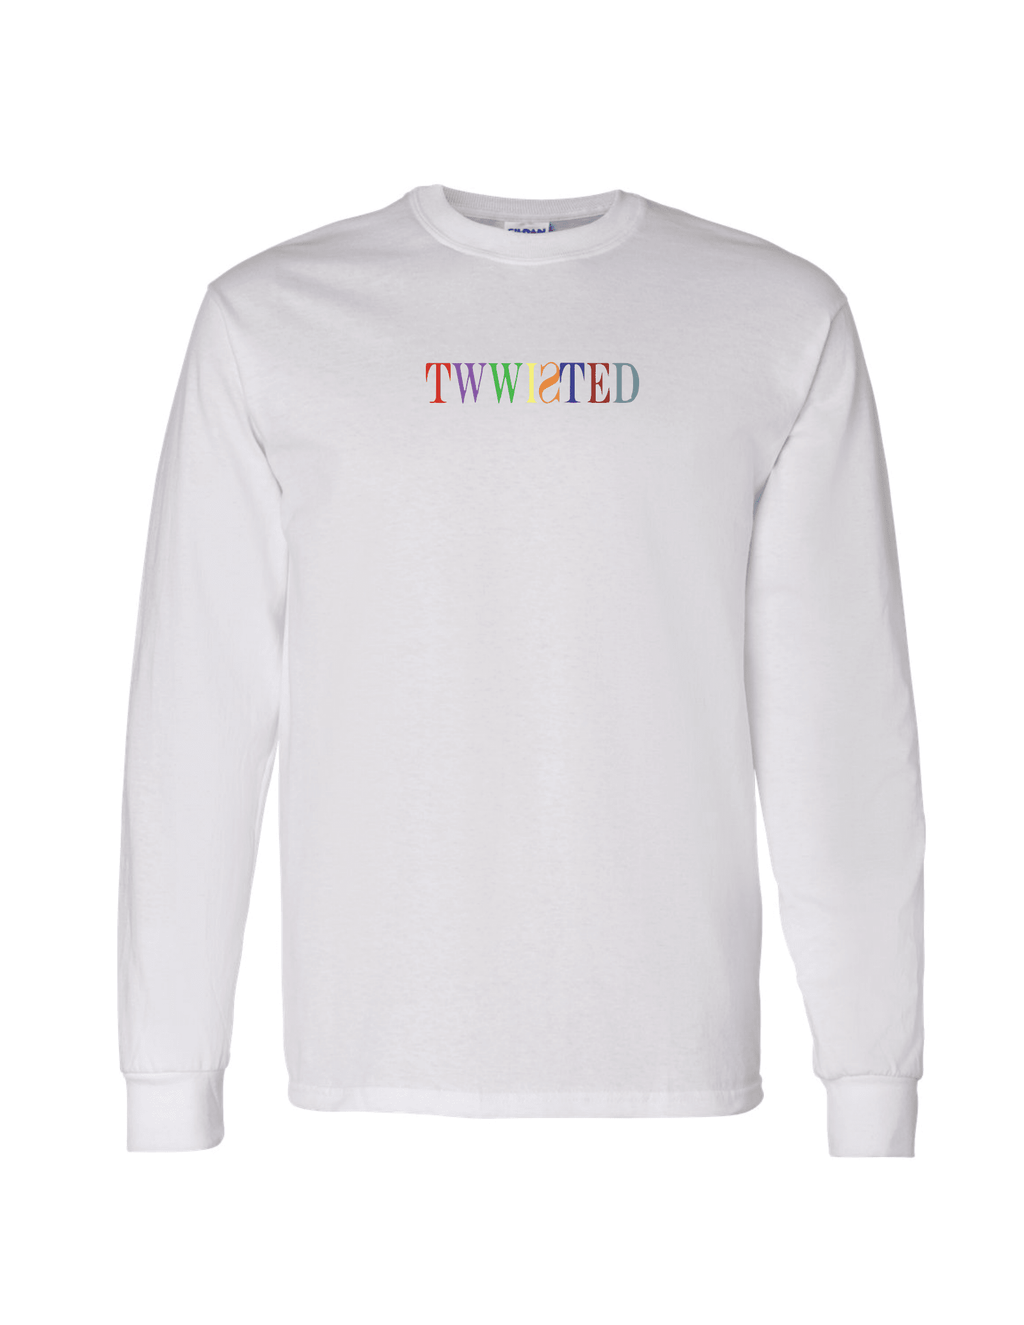 Passion V2 LS Tee - Twwisted